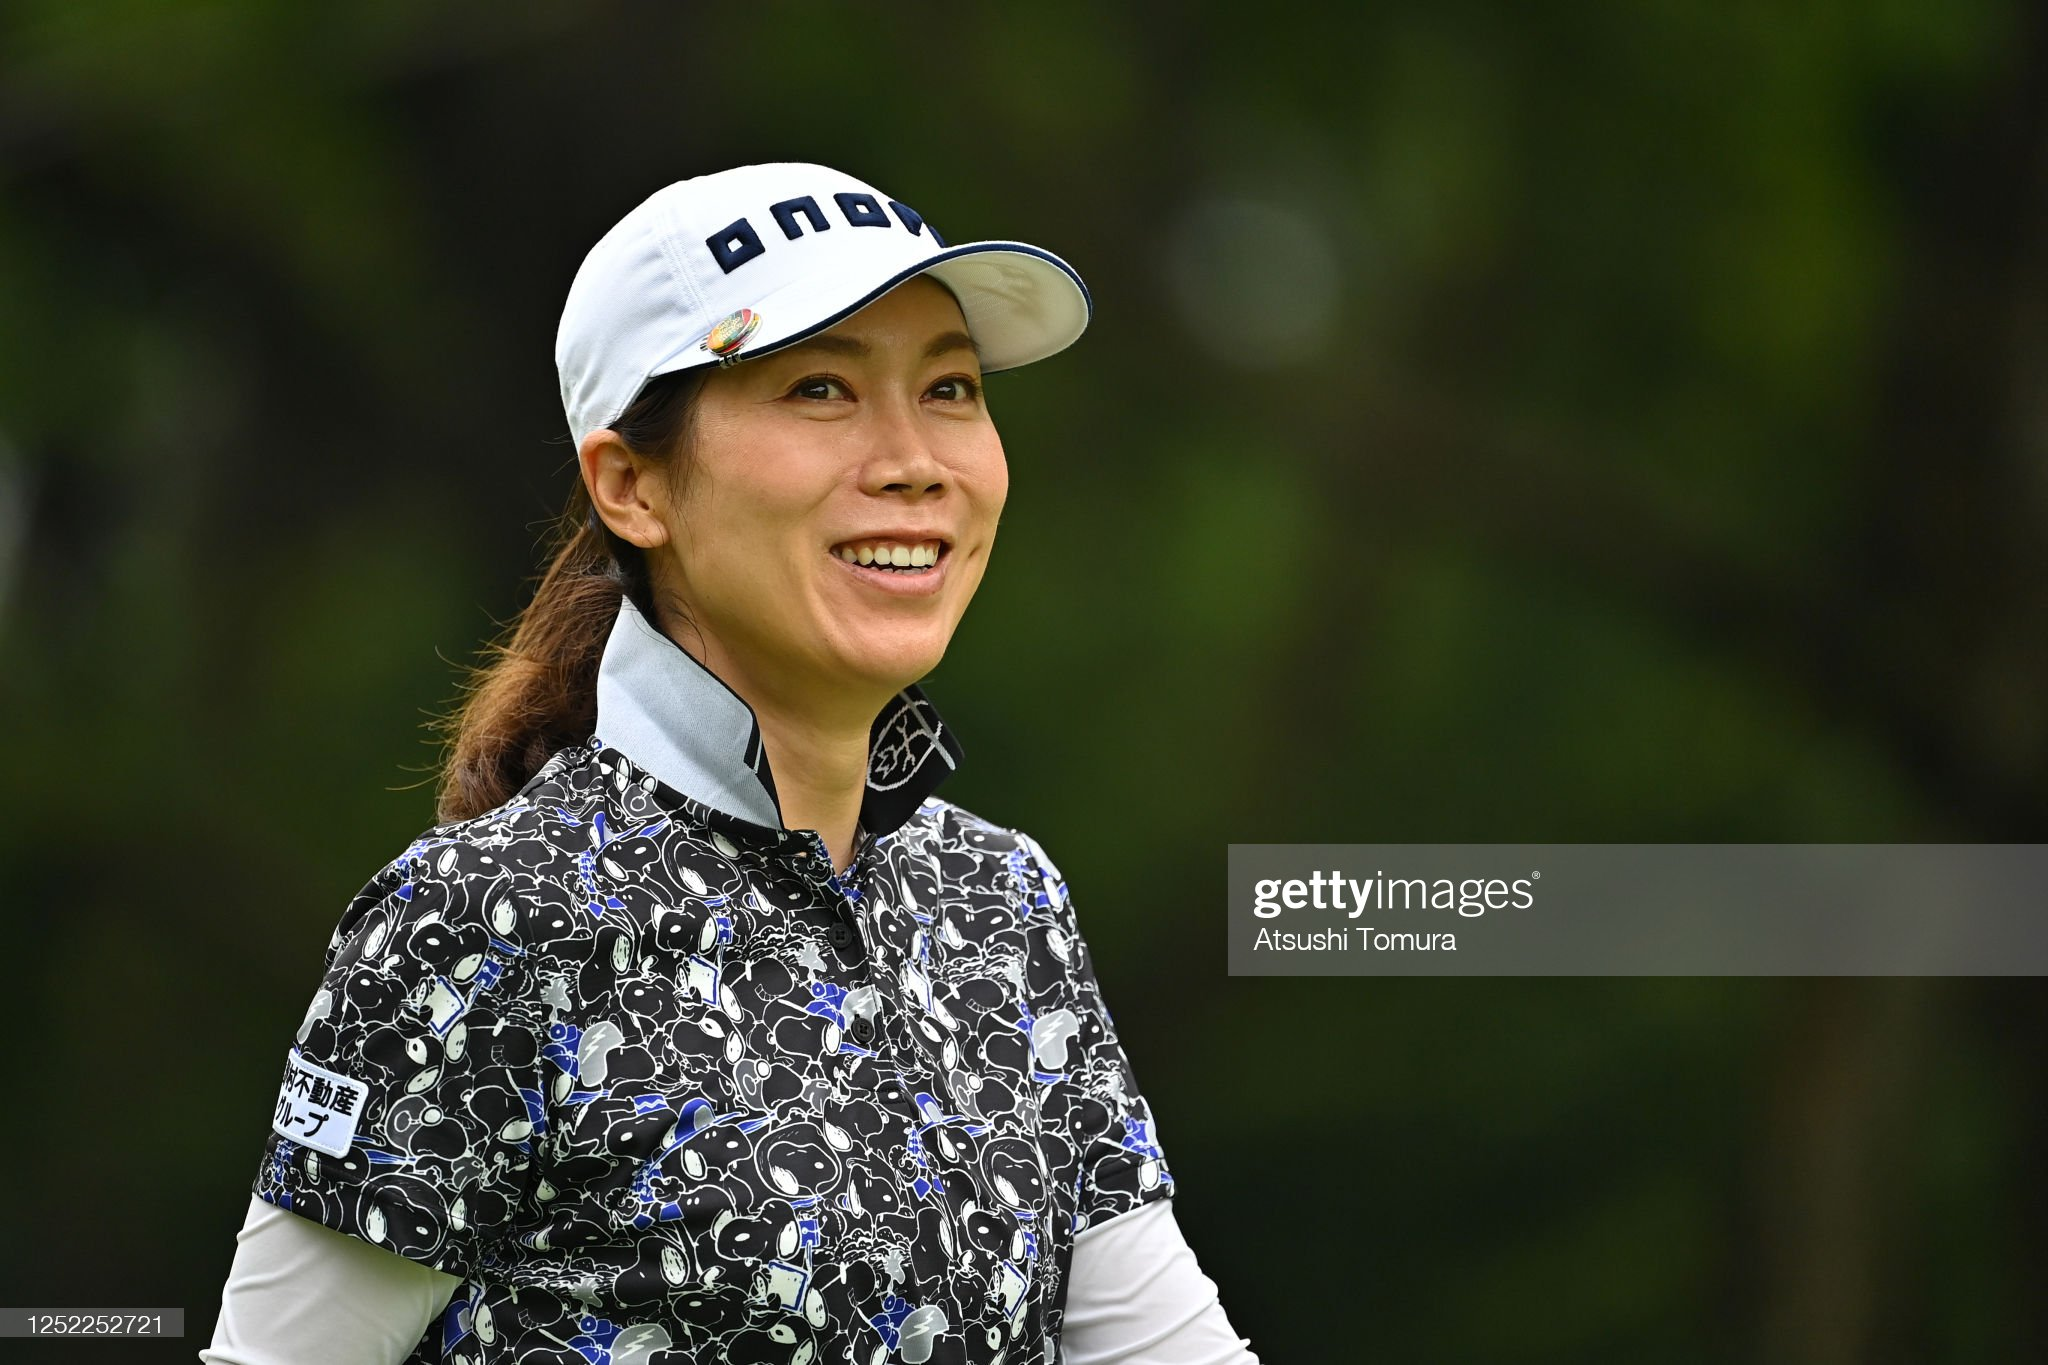 https://media.gettyimages.com/photos/jihee-lee-of-south-korea-smiles-after-her-tee-shot-on-the-11th-hole-picture-id1252252721?s=2048x2048